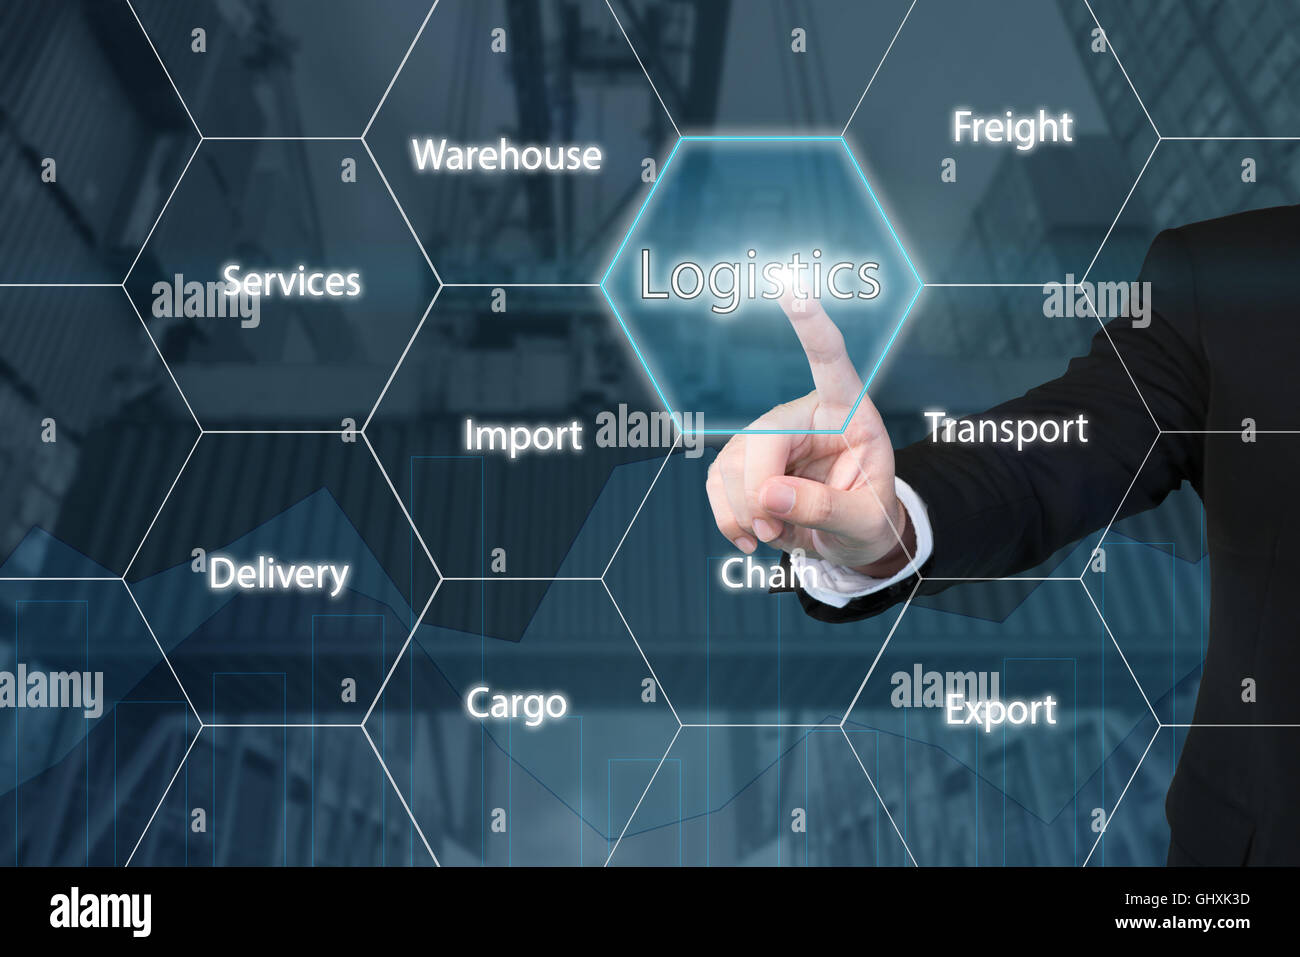 Business man touching the logistics icon with business success virtual screen - Stock Image